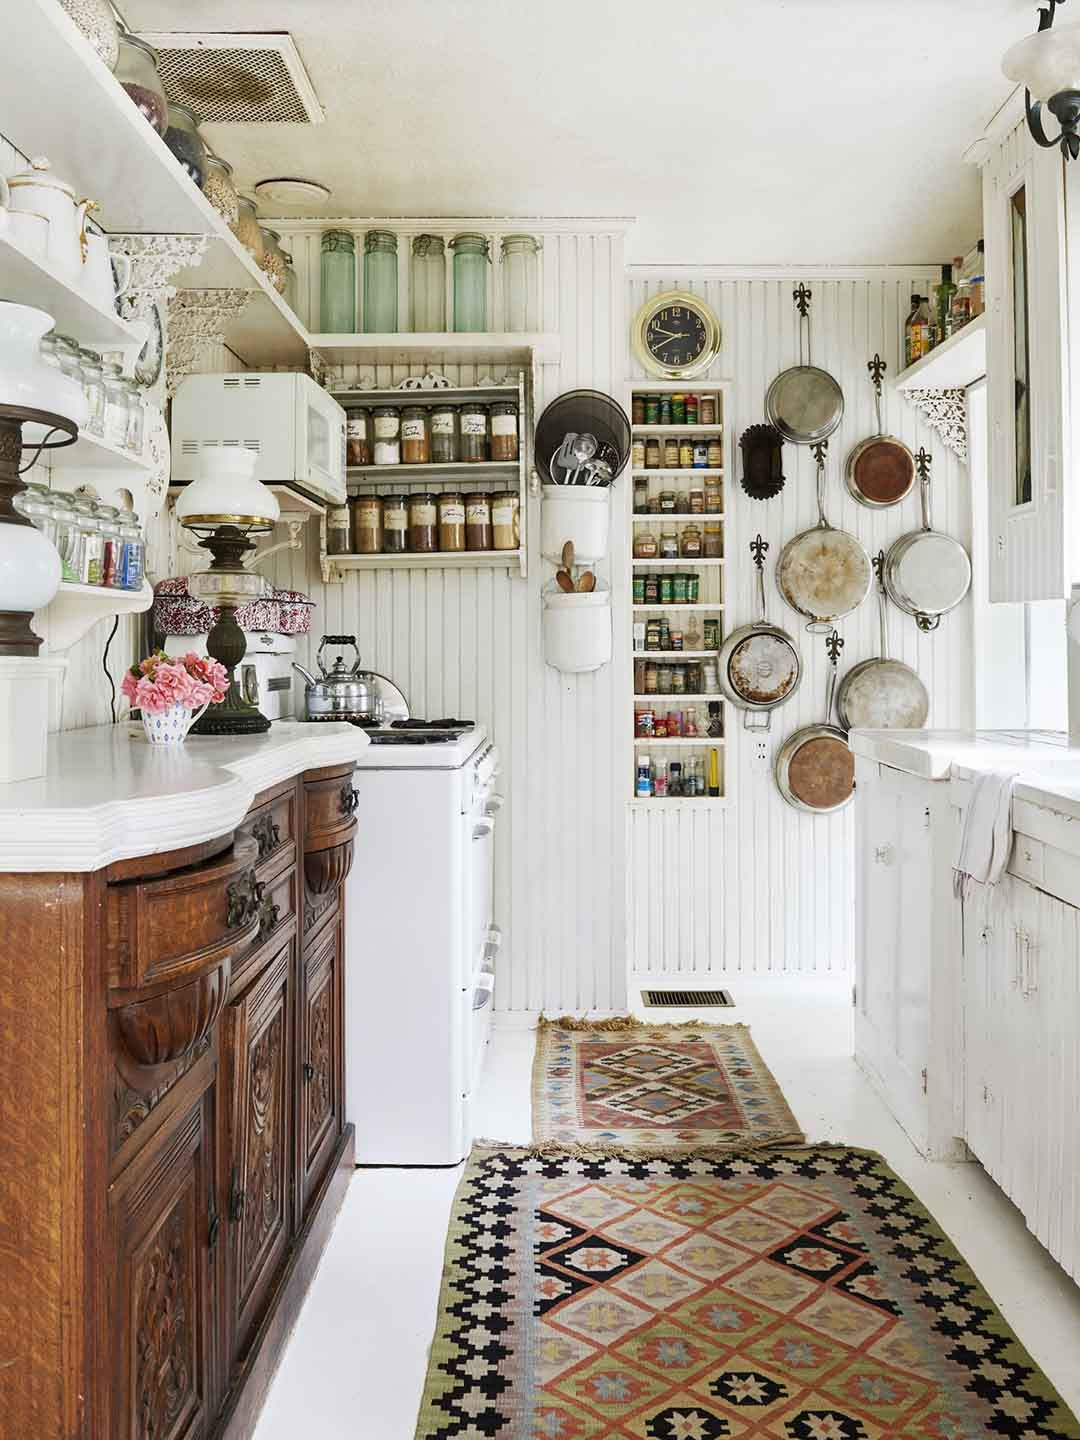 Best of Interior Design and Architecture Ideas #vintagekitchen